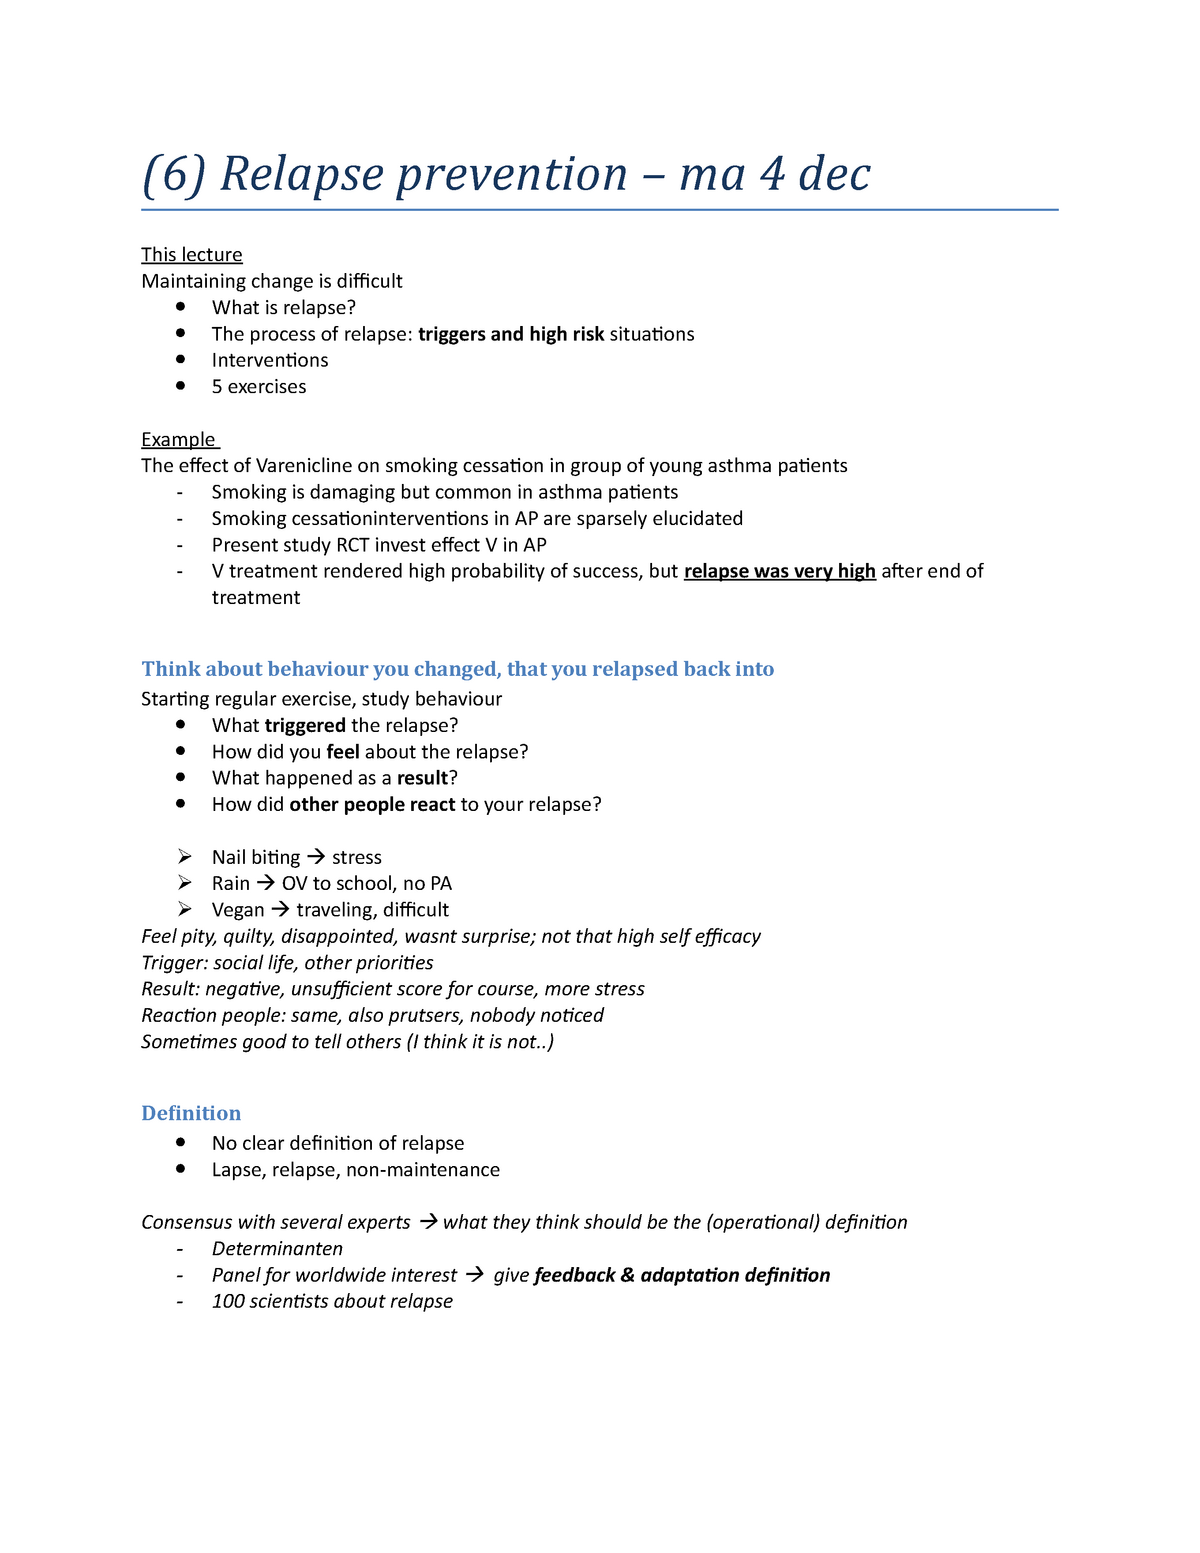 6) ma 4 dec - Relapse prevention - psych - AM_470730: Health